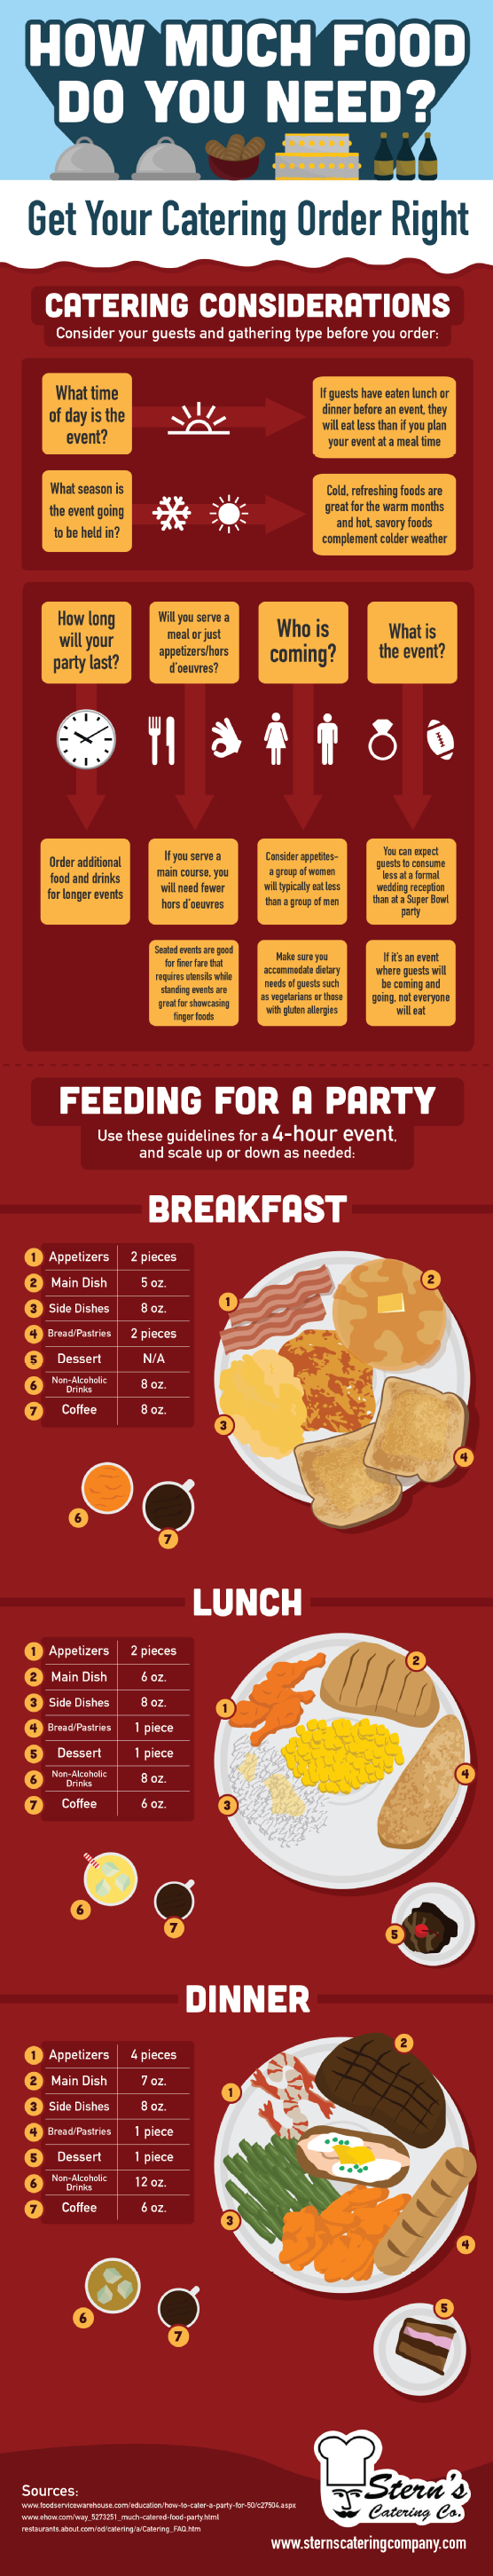 Catering Order Guide-Infographic